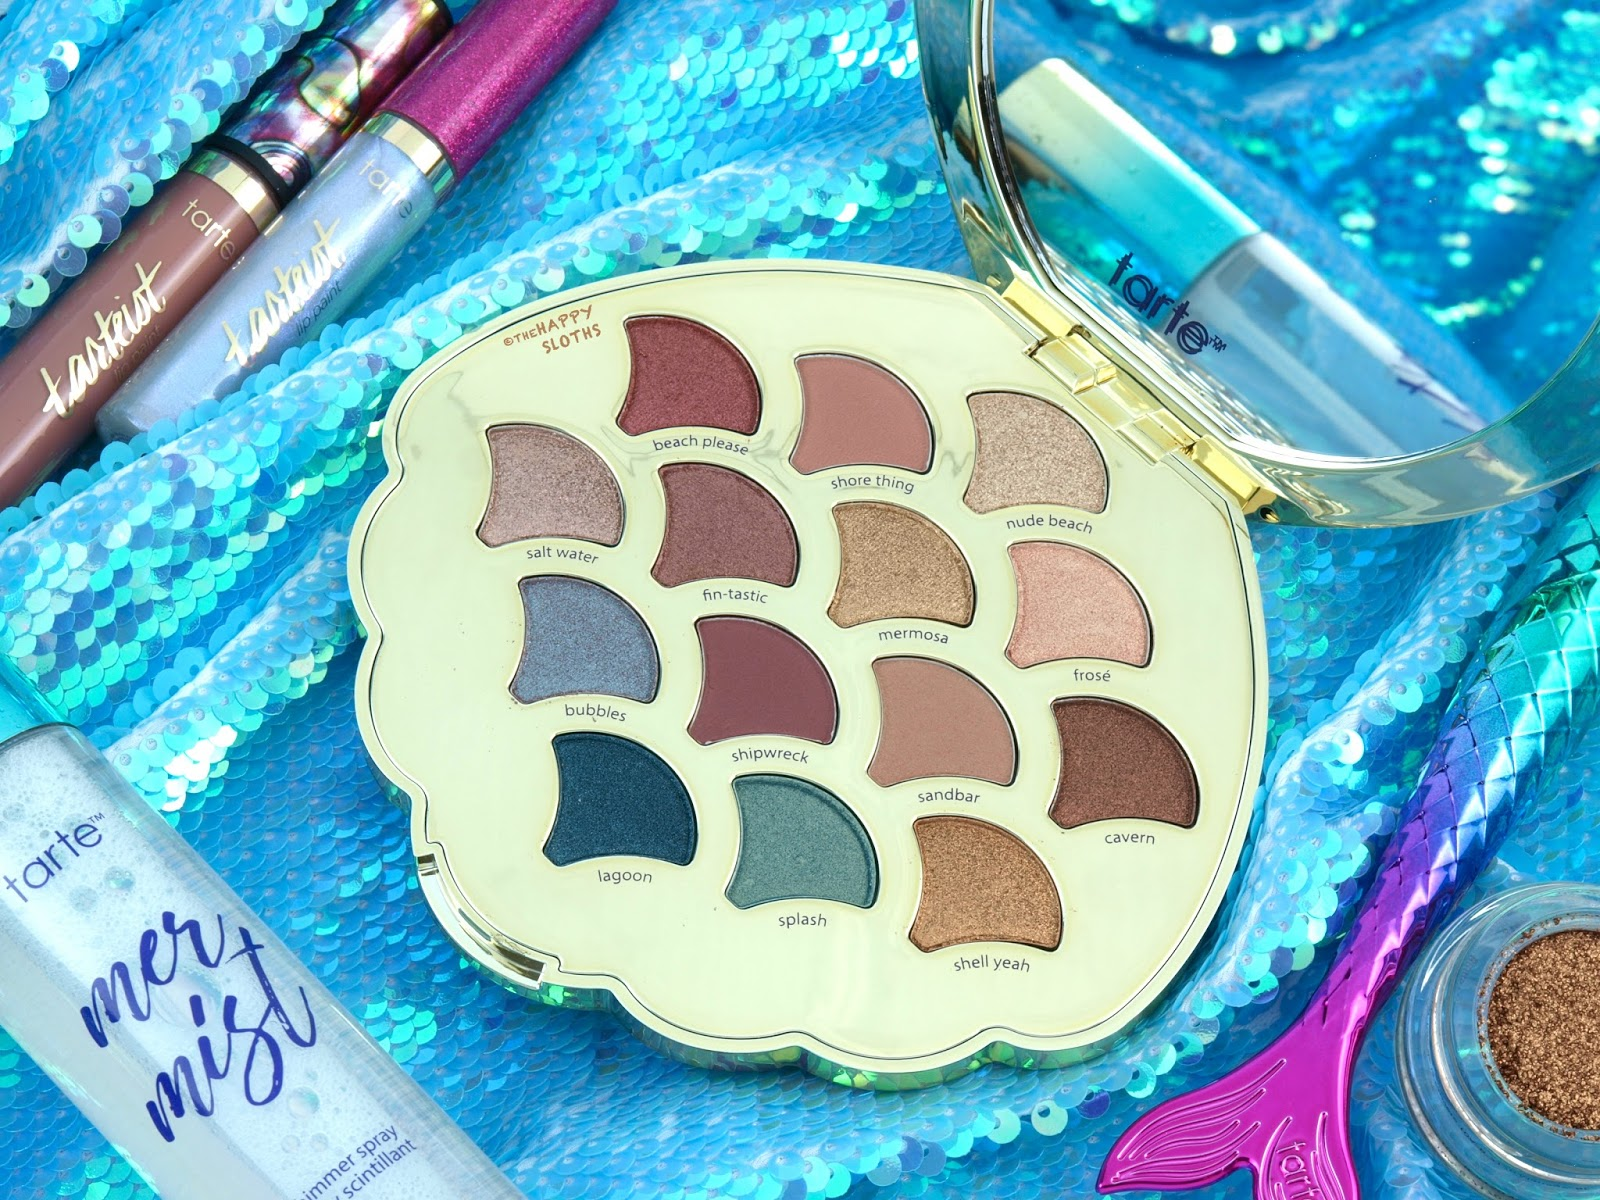 Tarte | Be A Mermaid & Make Waves Eyeshadow Palette: Review and Swatches